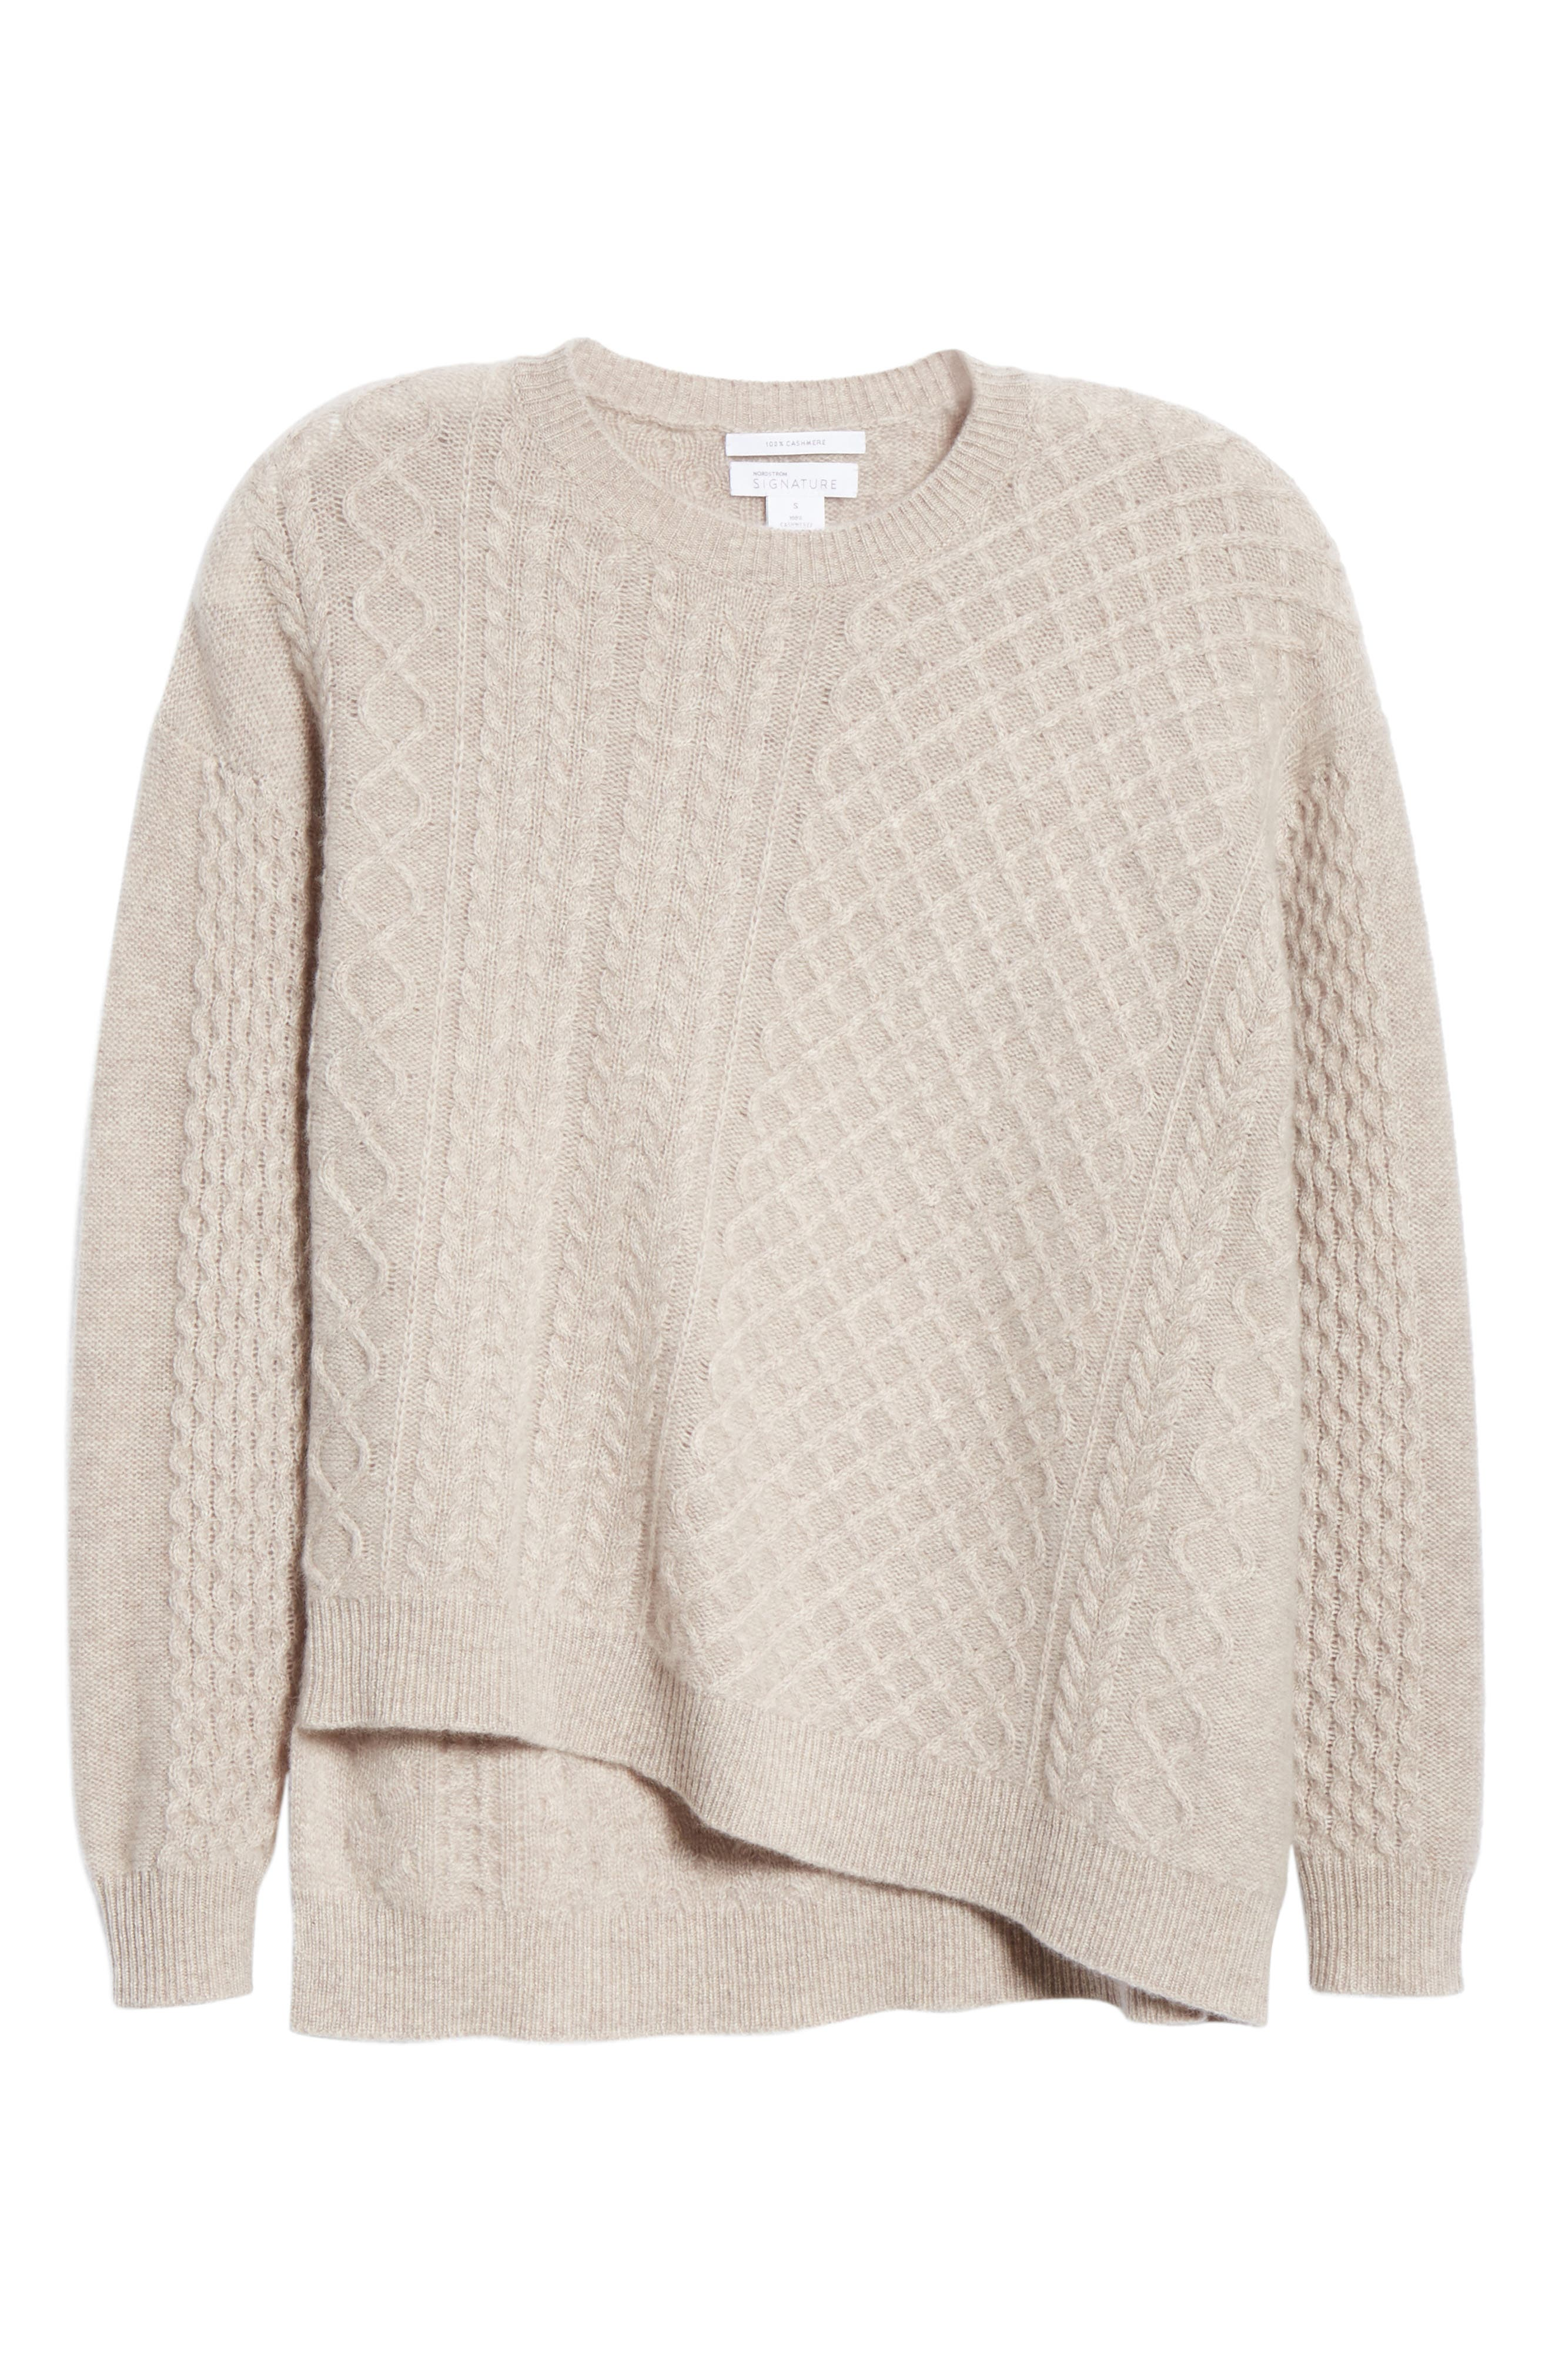 Cable Mix Asymmetrical Cashmere Sweater,                             Alternate thumbnail 6, color,                             BEIGE STRING HEATHER